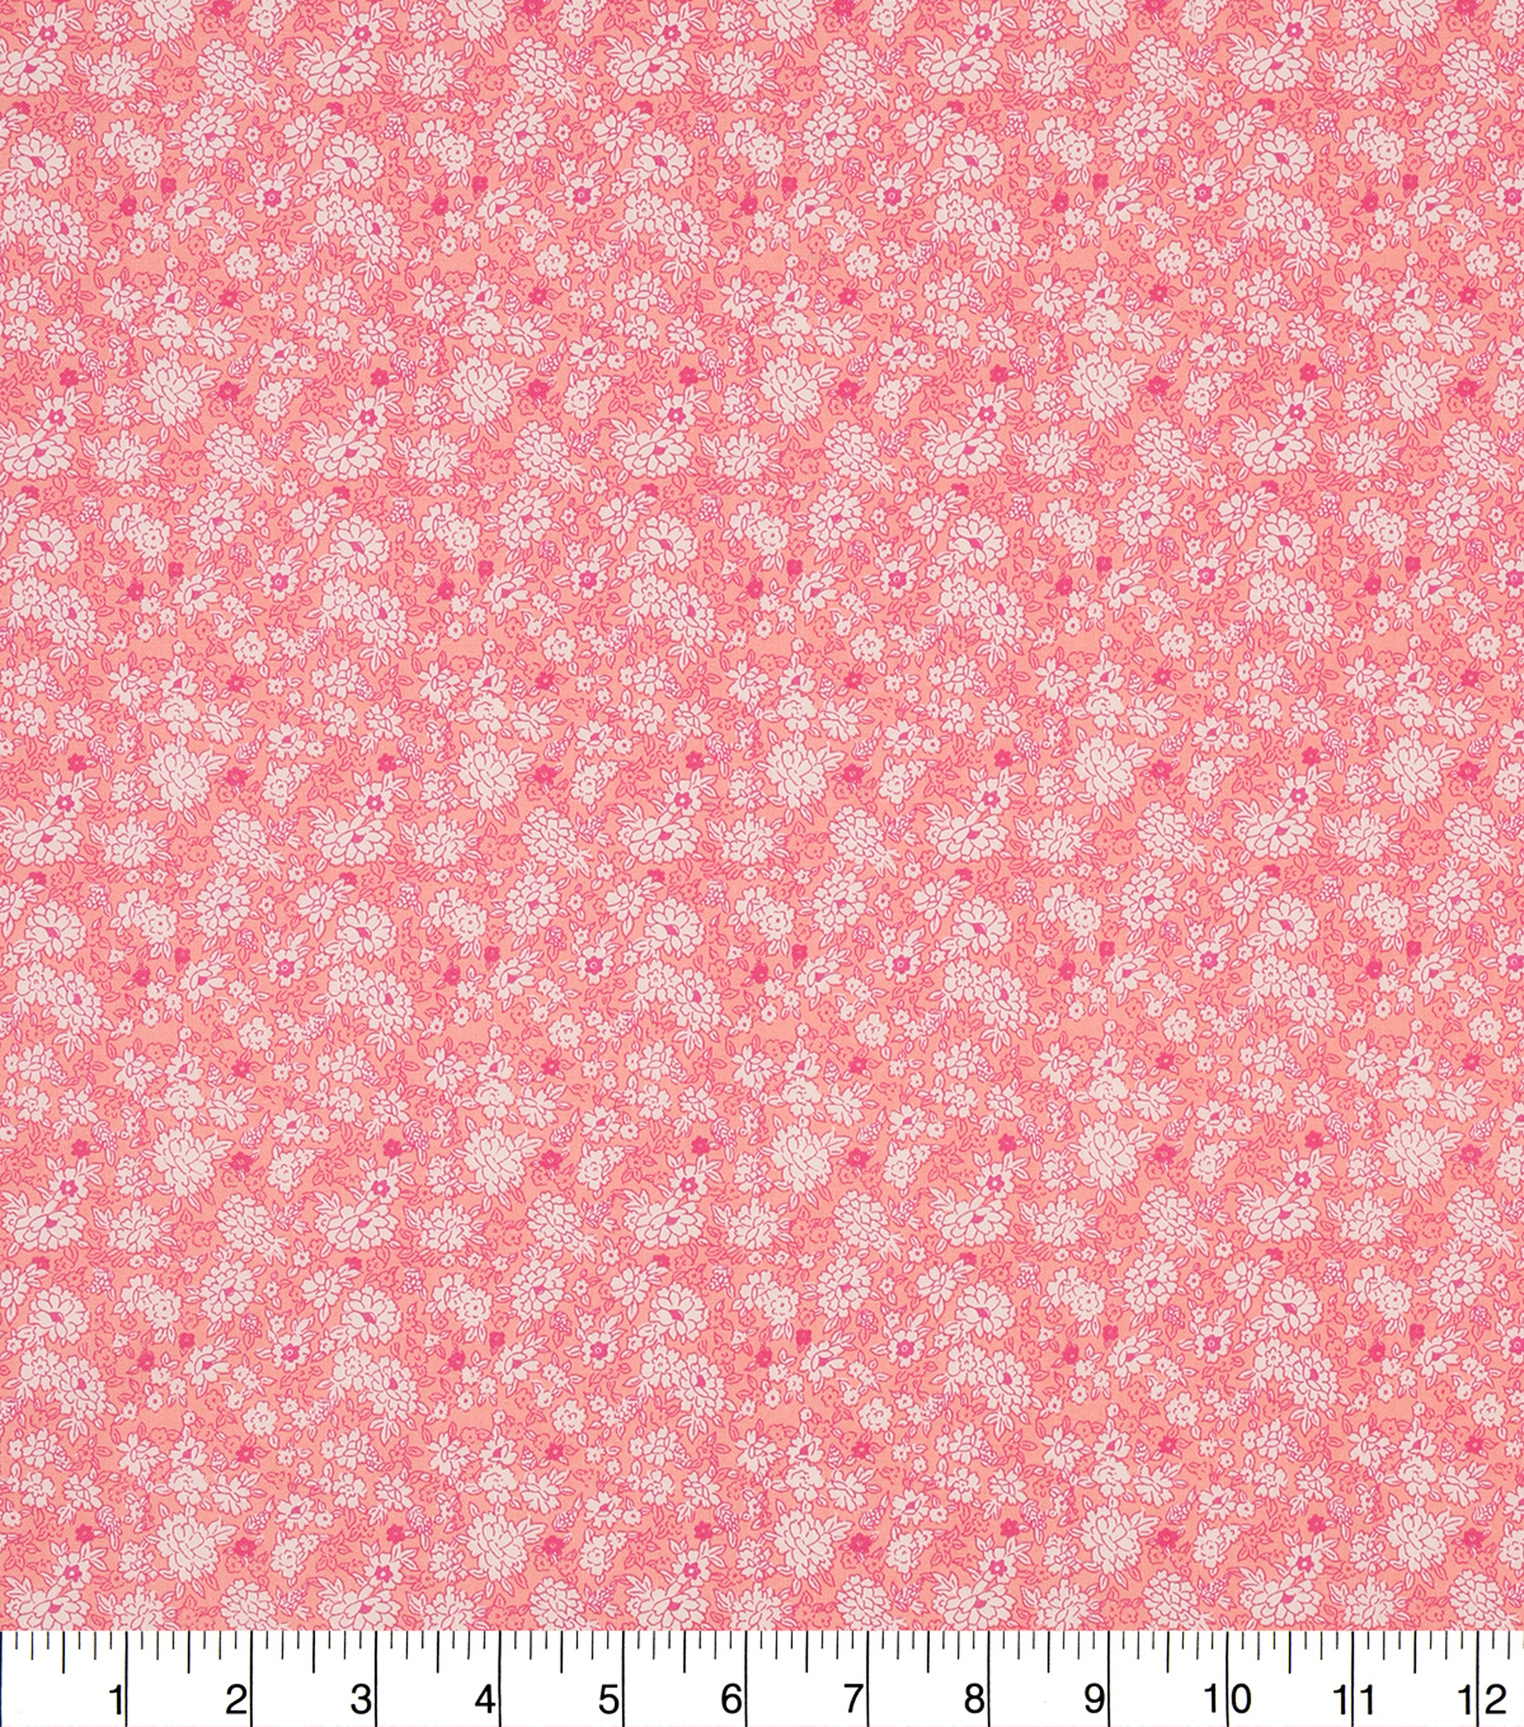 Keepsake Calico Cotton Fabric 43\u0022-Blue Pink Packed Ditsy Floral